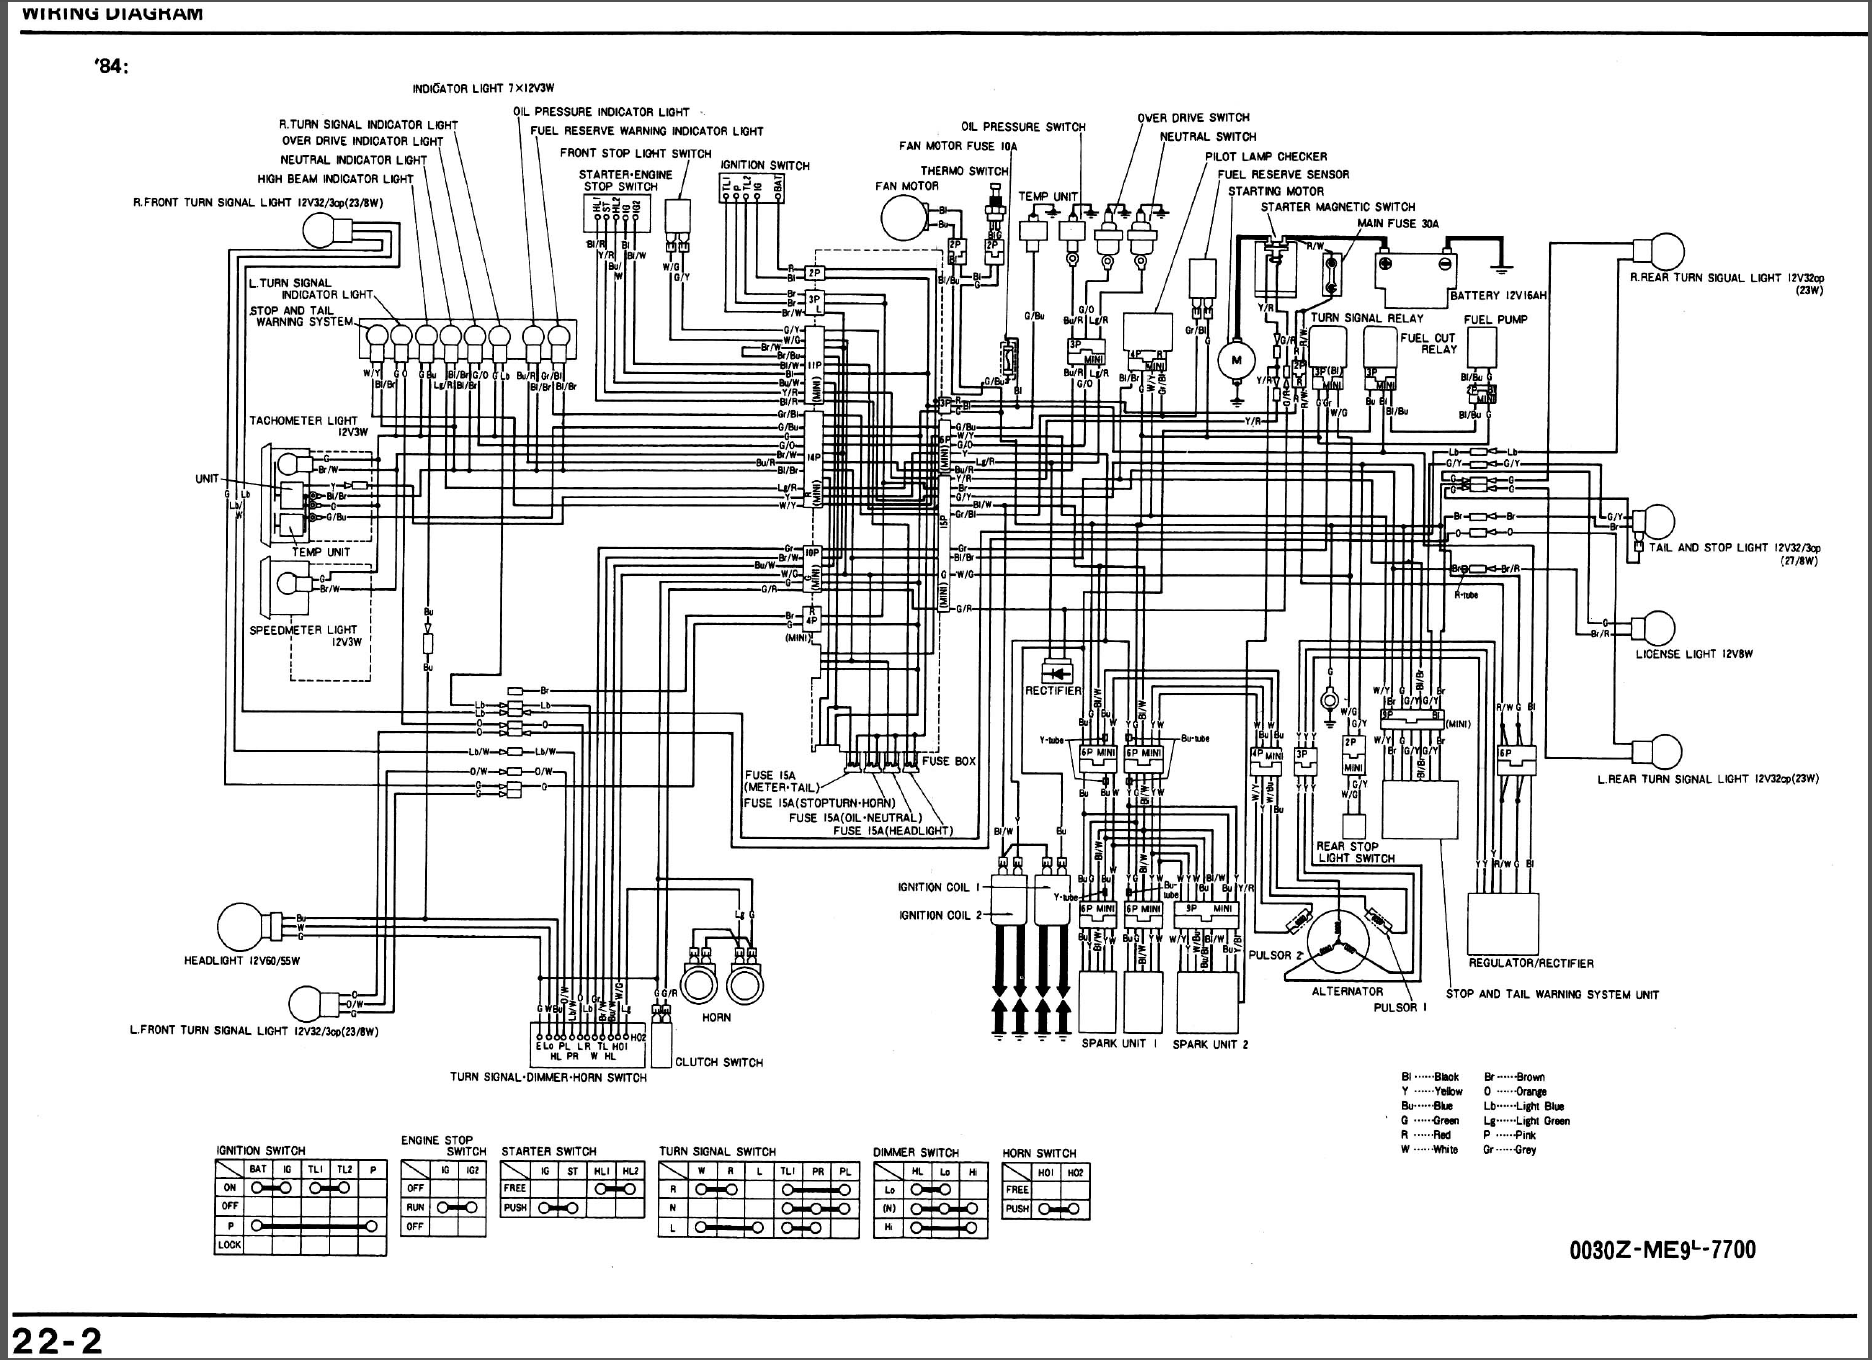 9265d1409799690 1984 honda shadow 700 wireing diagram b 1984 honda shadow 700 1984 honda shadow vt700c wiring diagram at bakdesigns.co